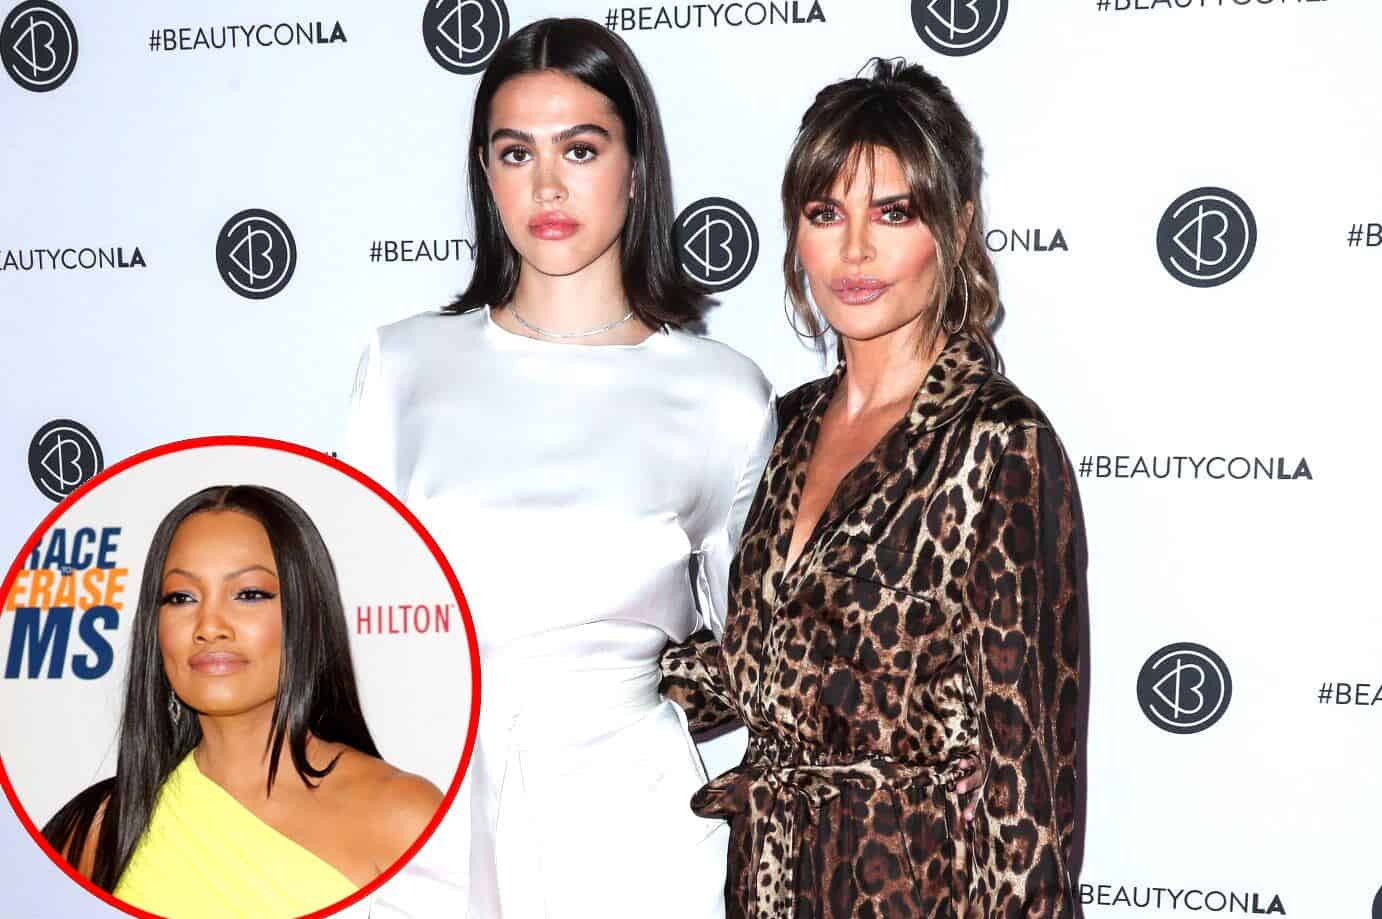 PHOTOS: Lisa Rinna Caught Filming Multiple Takes of RHOBH Scene With Daughter Amelia Hamlin Regarding Conversation About Garcelle's Comments, See the Evidence of the Staged Scene as Fans React